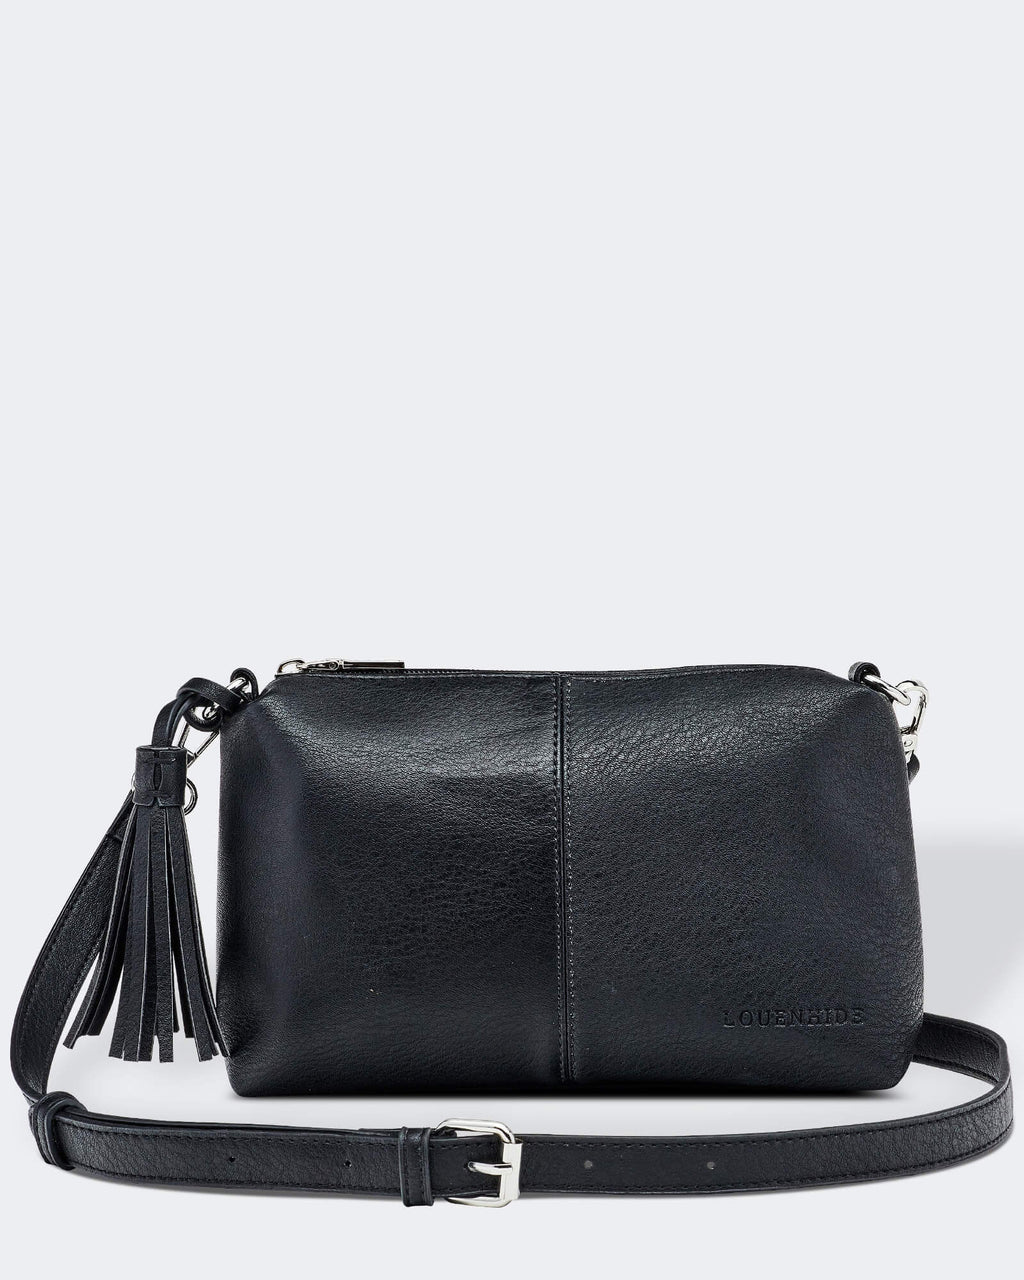 Baby Daisy Cross body Bag Louenhide Black PU